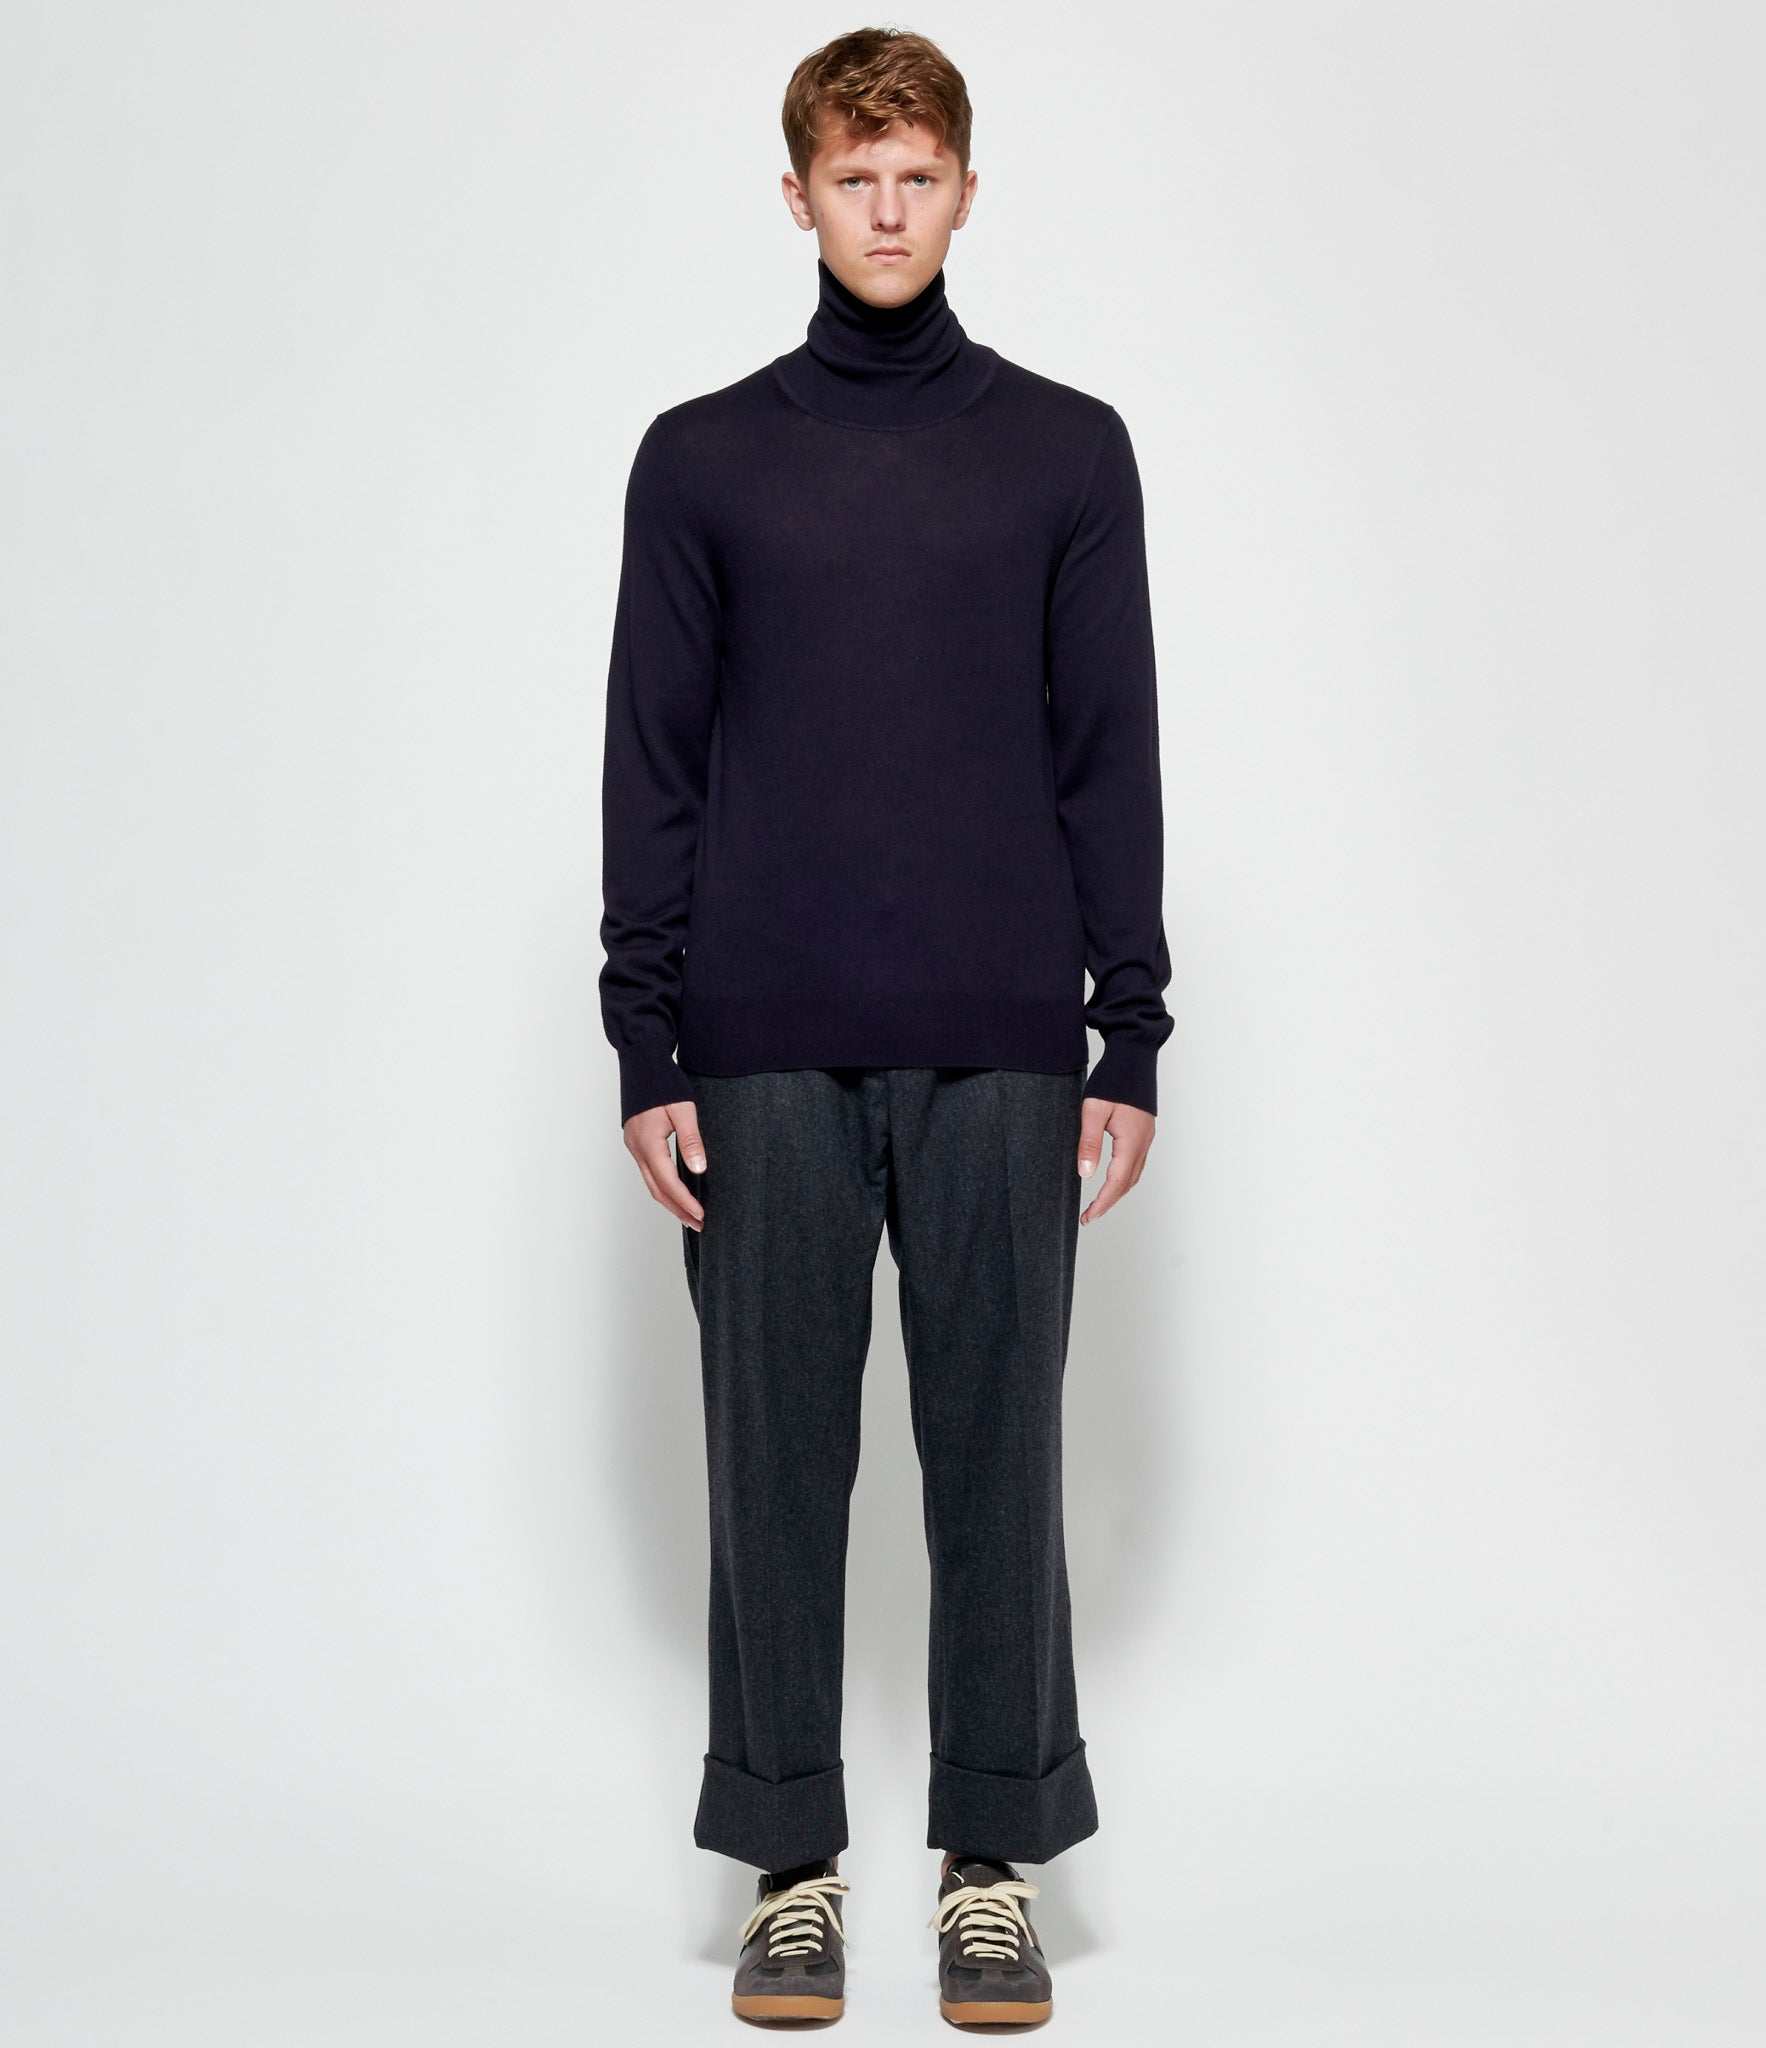 Maison Margiela Black Elbow Patch Turtle Neck Sweater